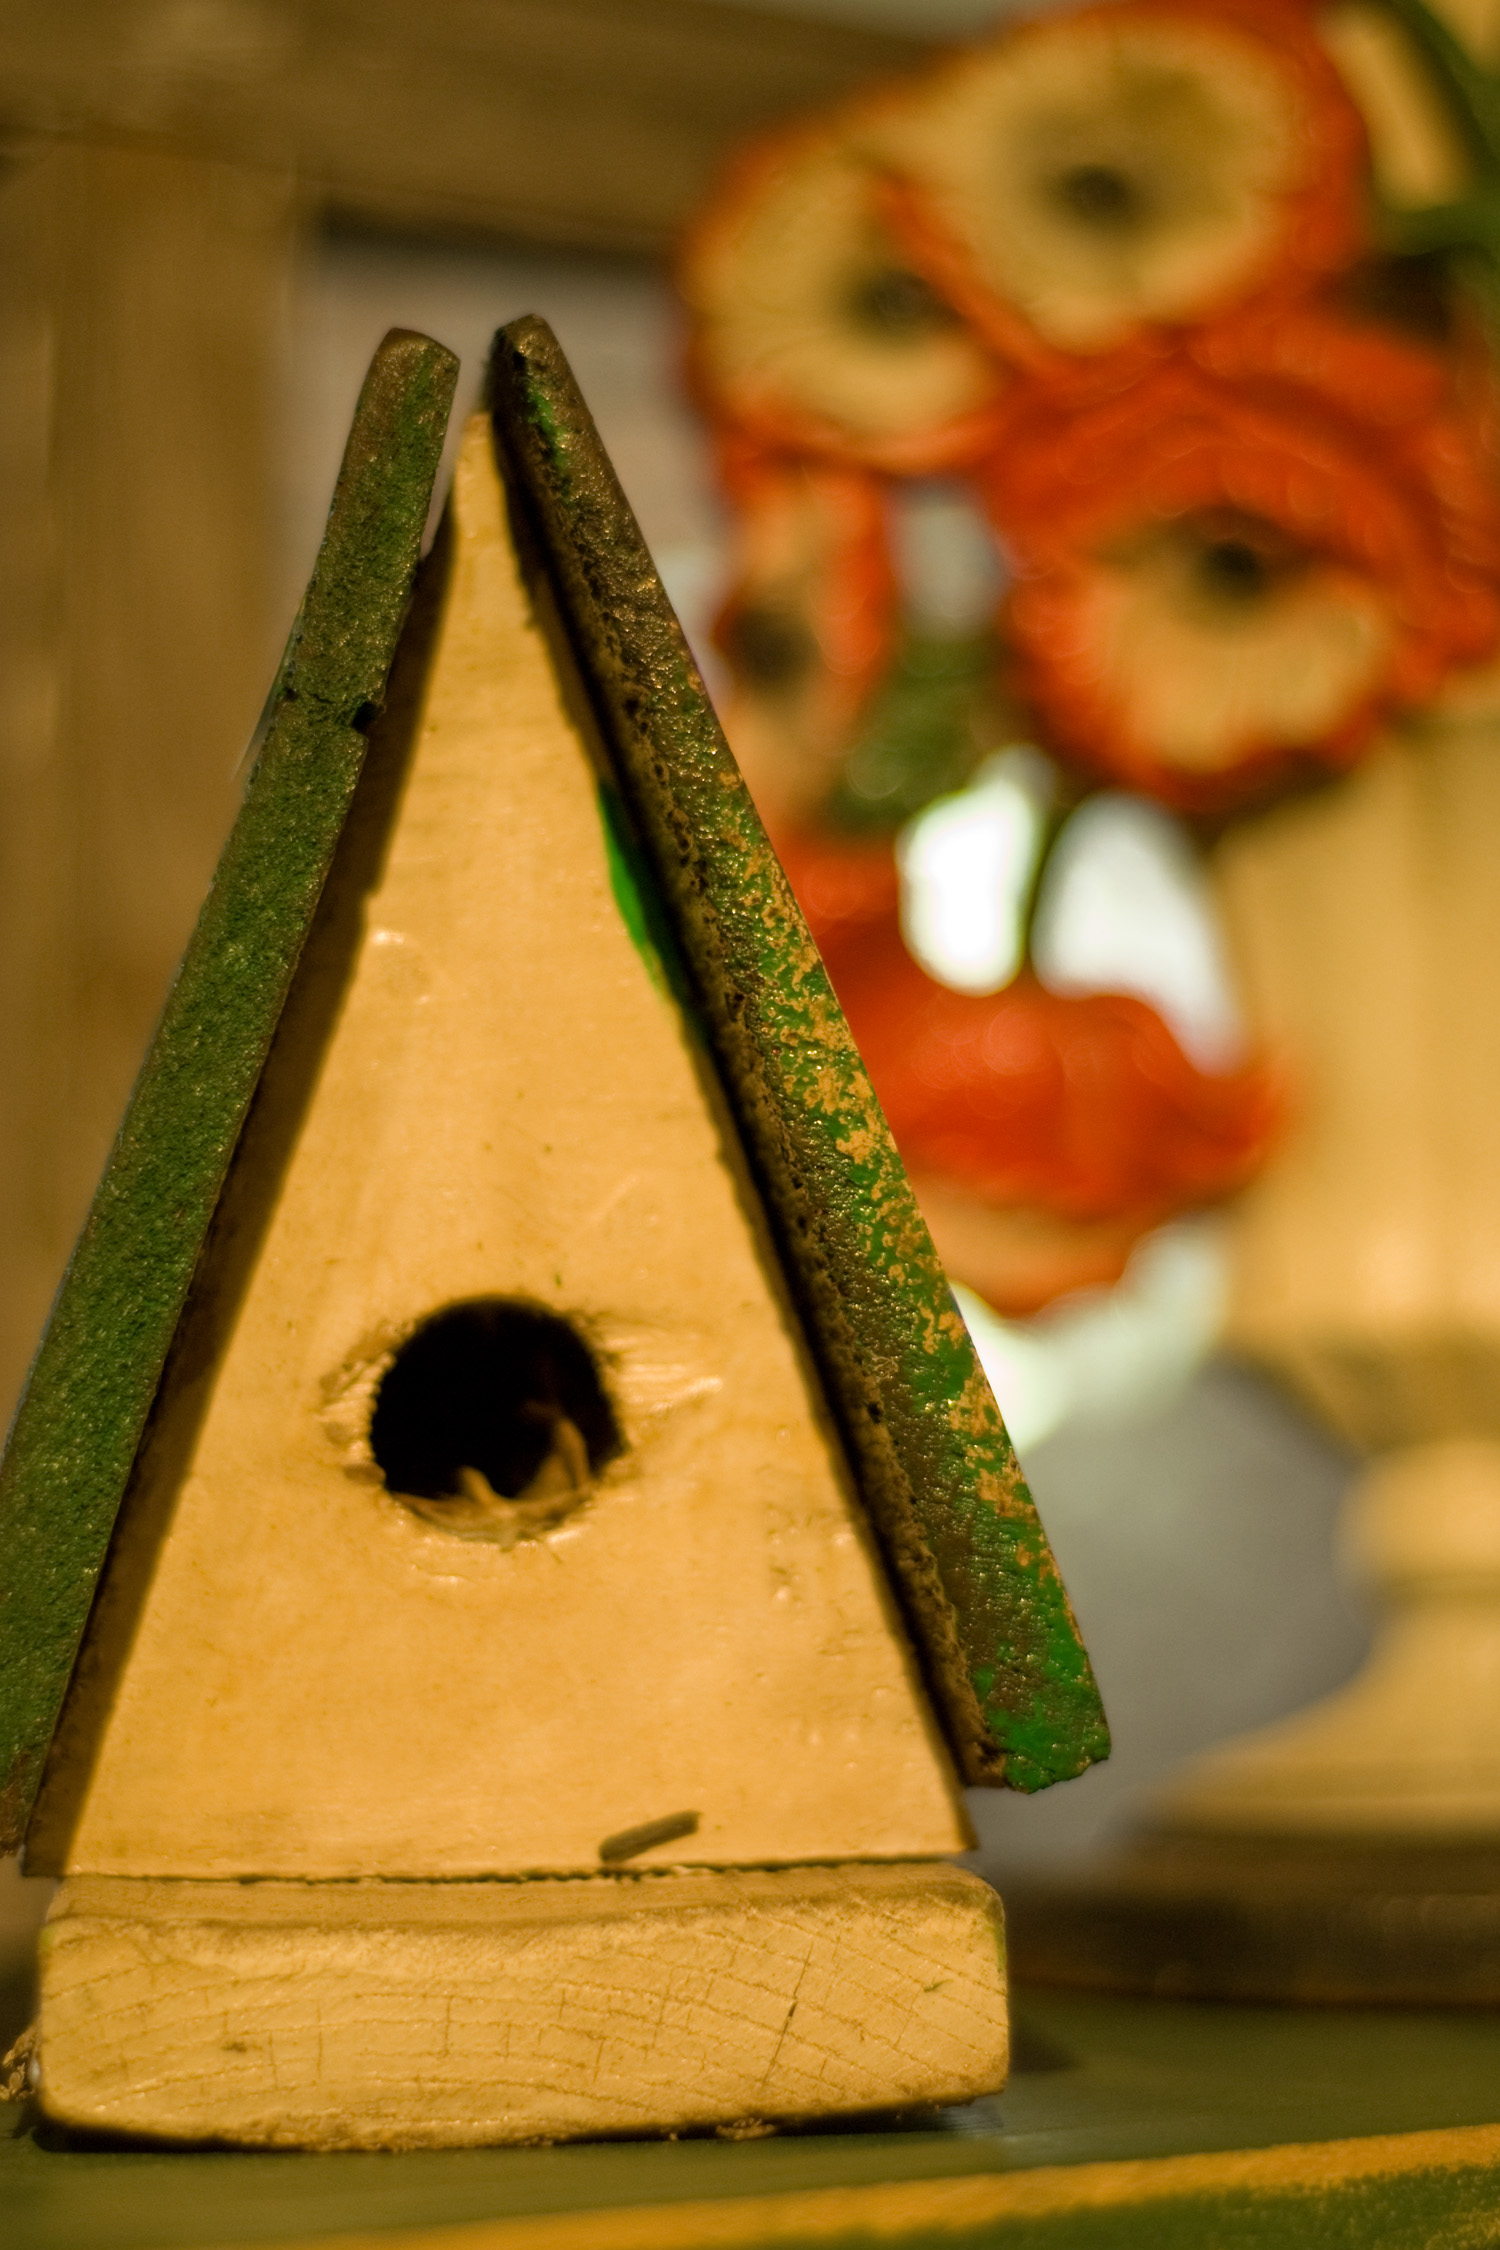 _DSC0093_-_birdhouse_with_flowers-1.jpg